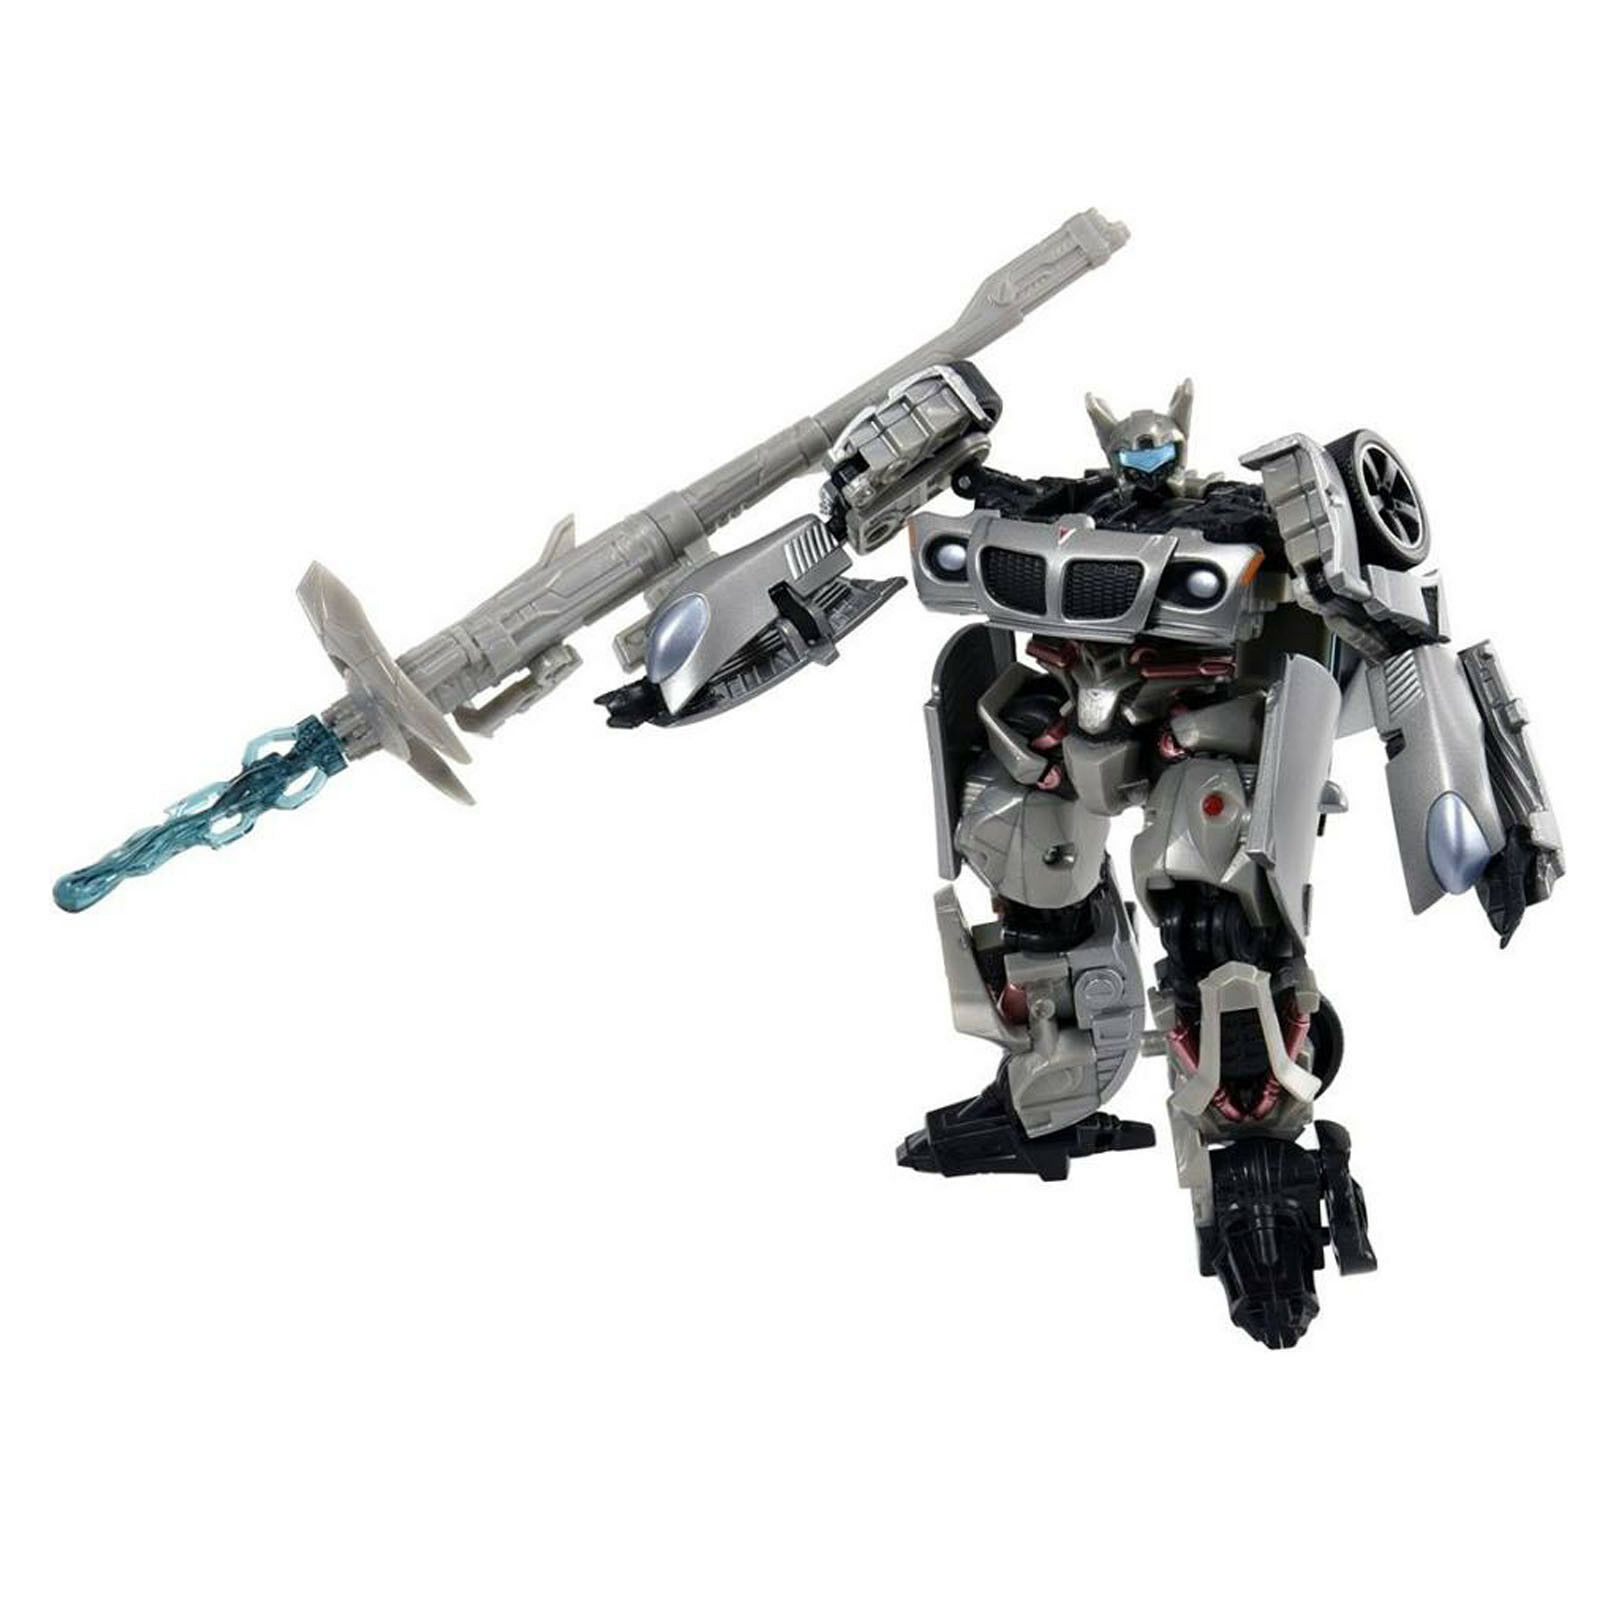 Transformers The Best MB-12 Autobot Jazz Jazz Jazz MB 12 Dulex Class Action Figure Gift 10c2bc